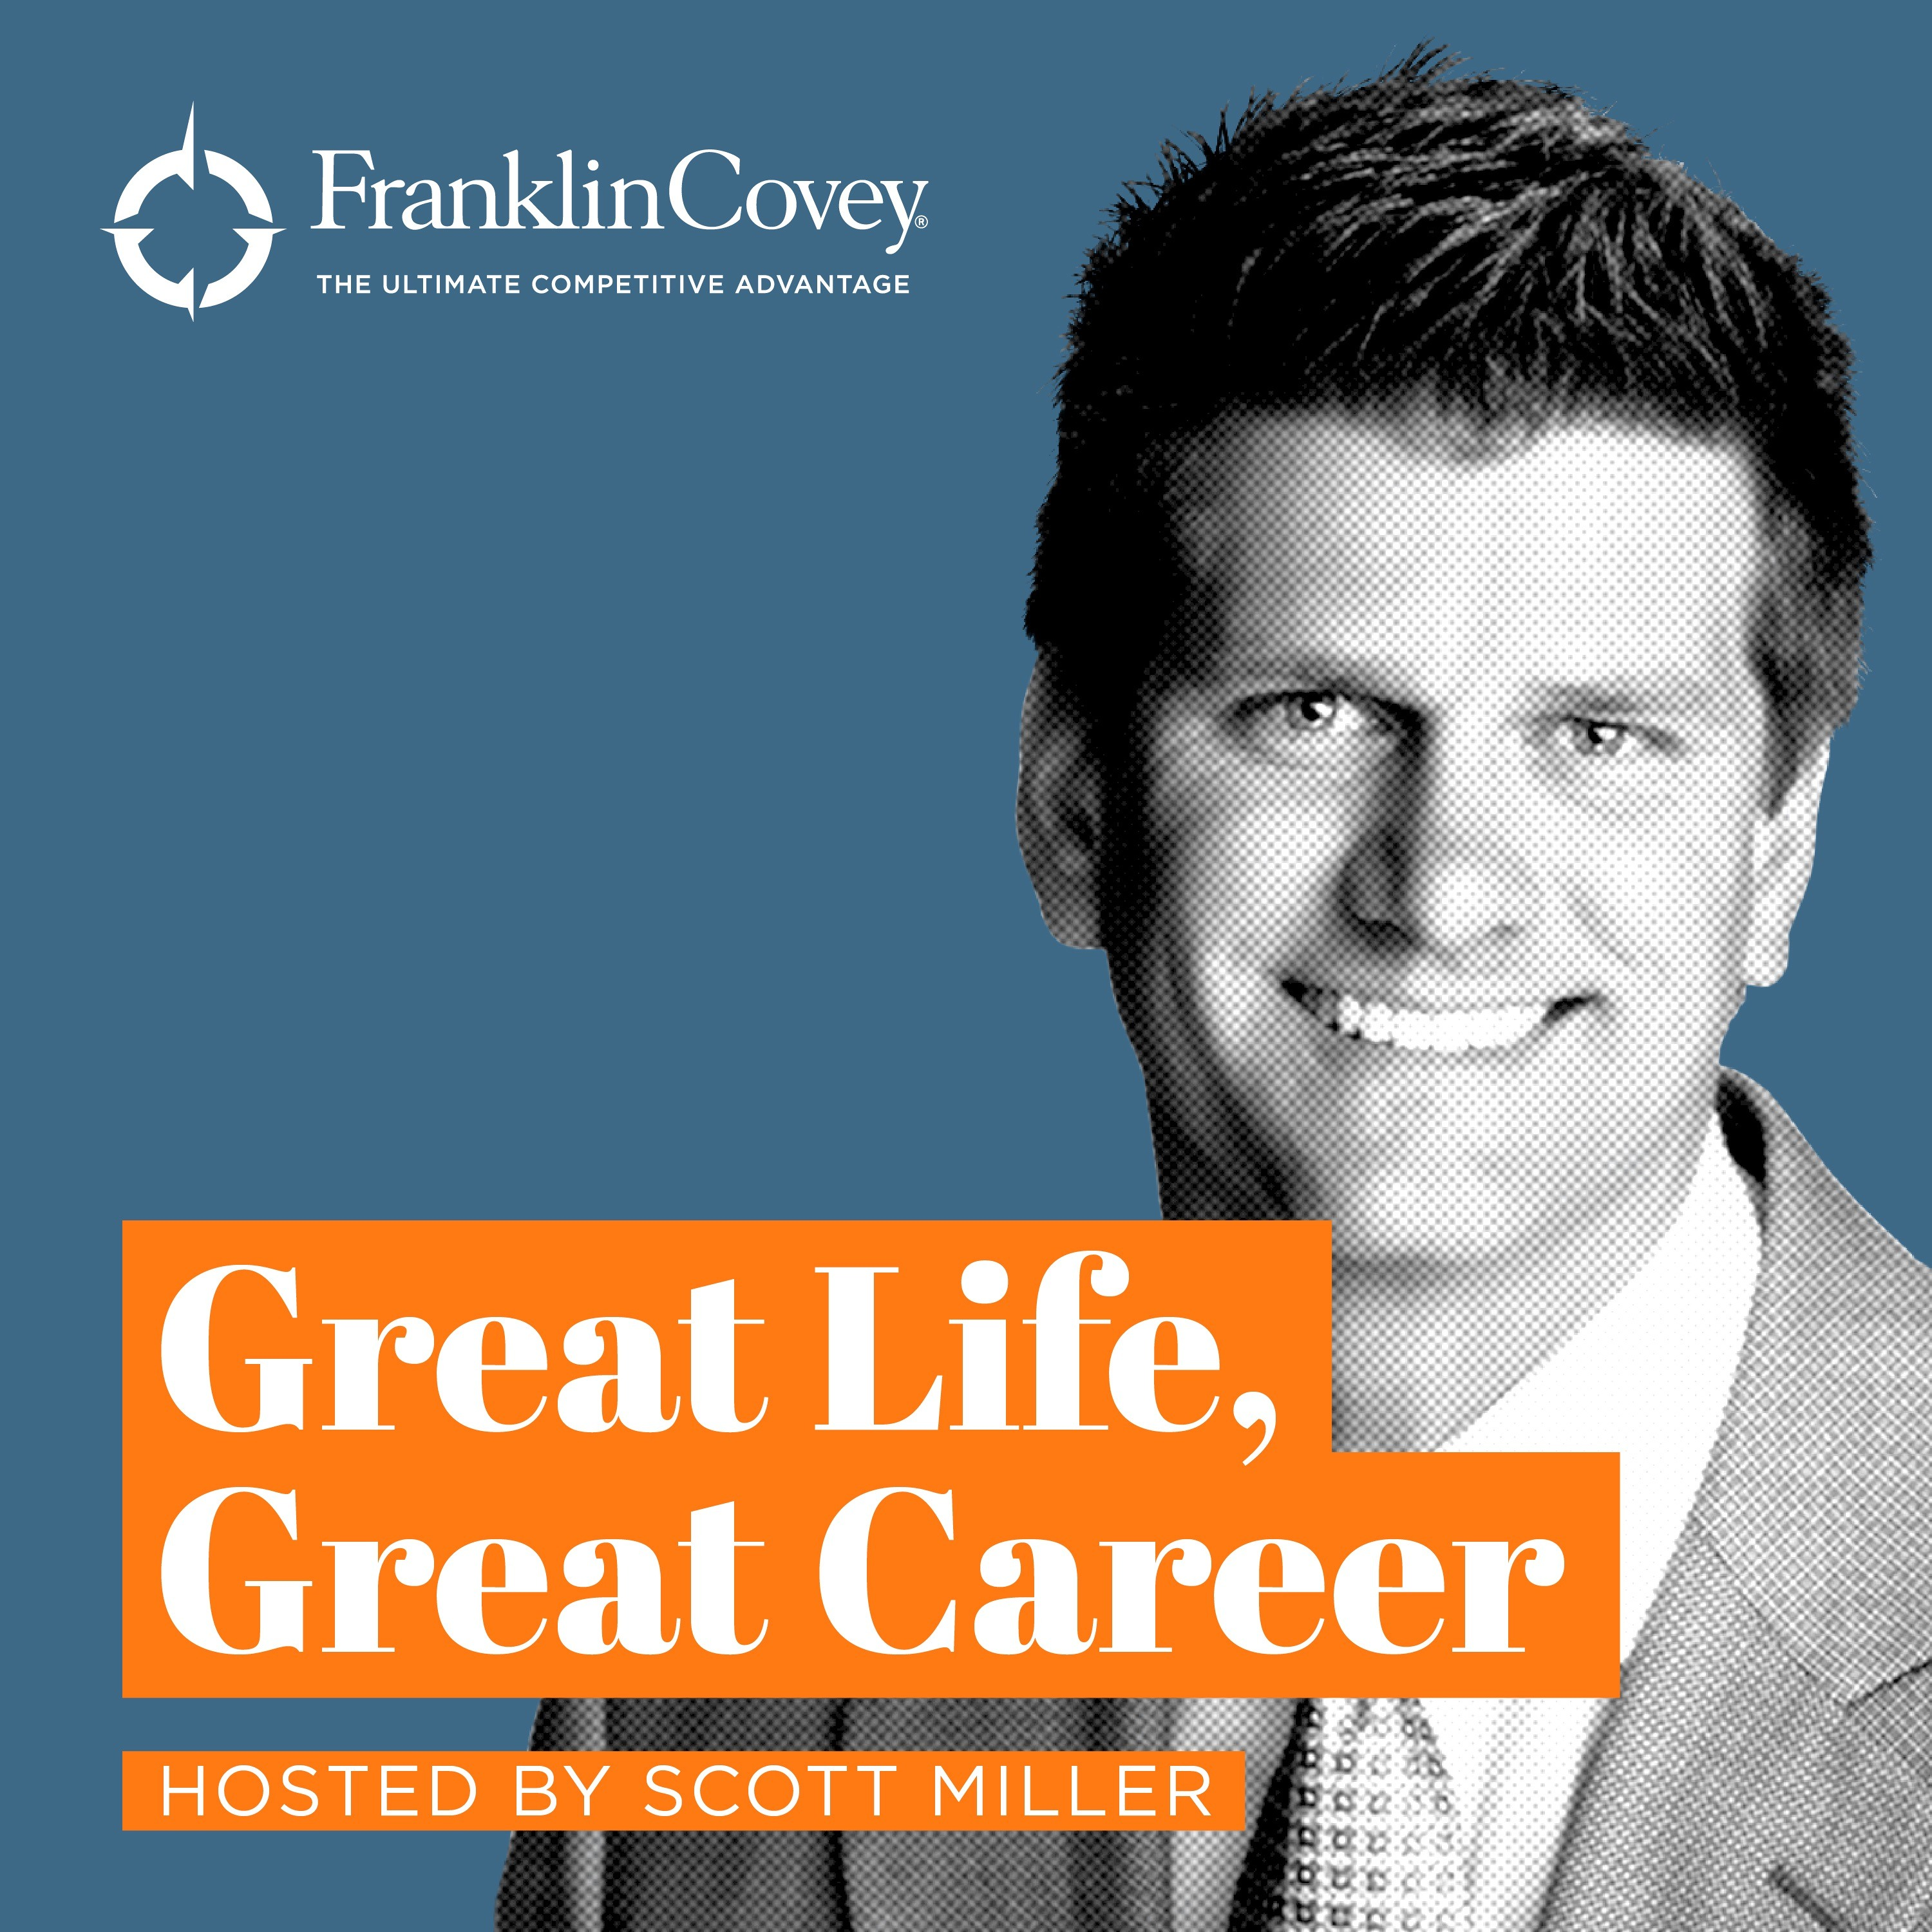 Episode #36: Moving from Mess to Success with host turned guest and author Scott Miller